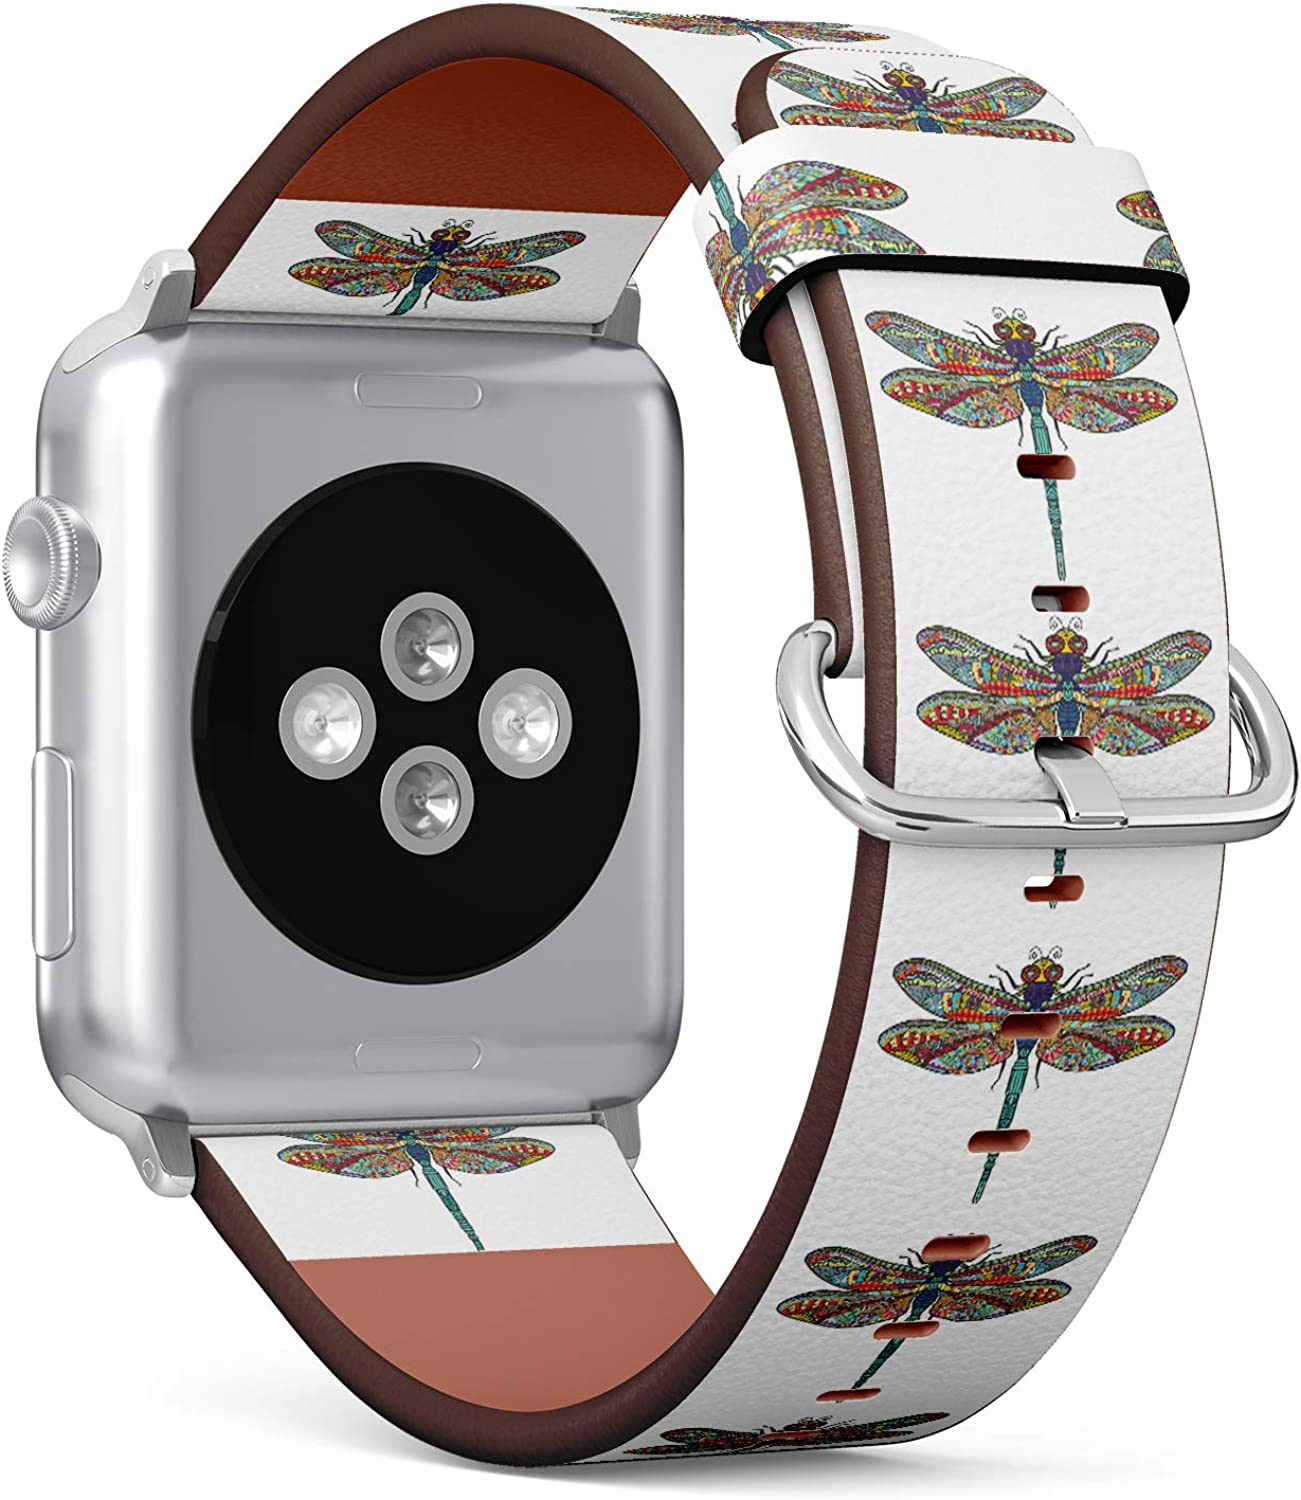 (Zen Doodle Art Doodle Sketch Dragonfly.) Patterned Leather Wristband Strap for Apple Watch Series 4/3/2/1 gen,Replacement for iWatch 38mm / 40mm Bands